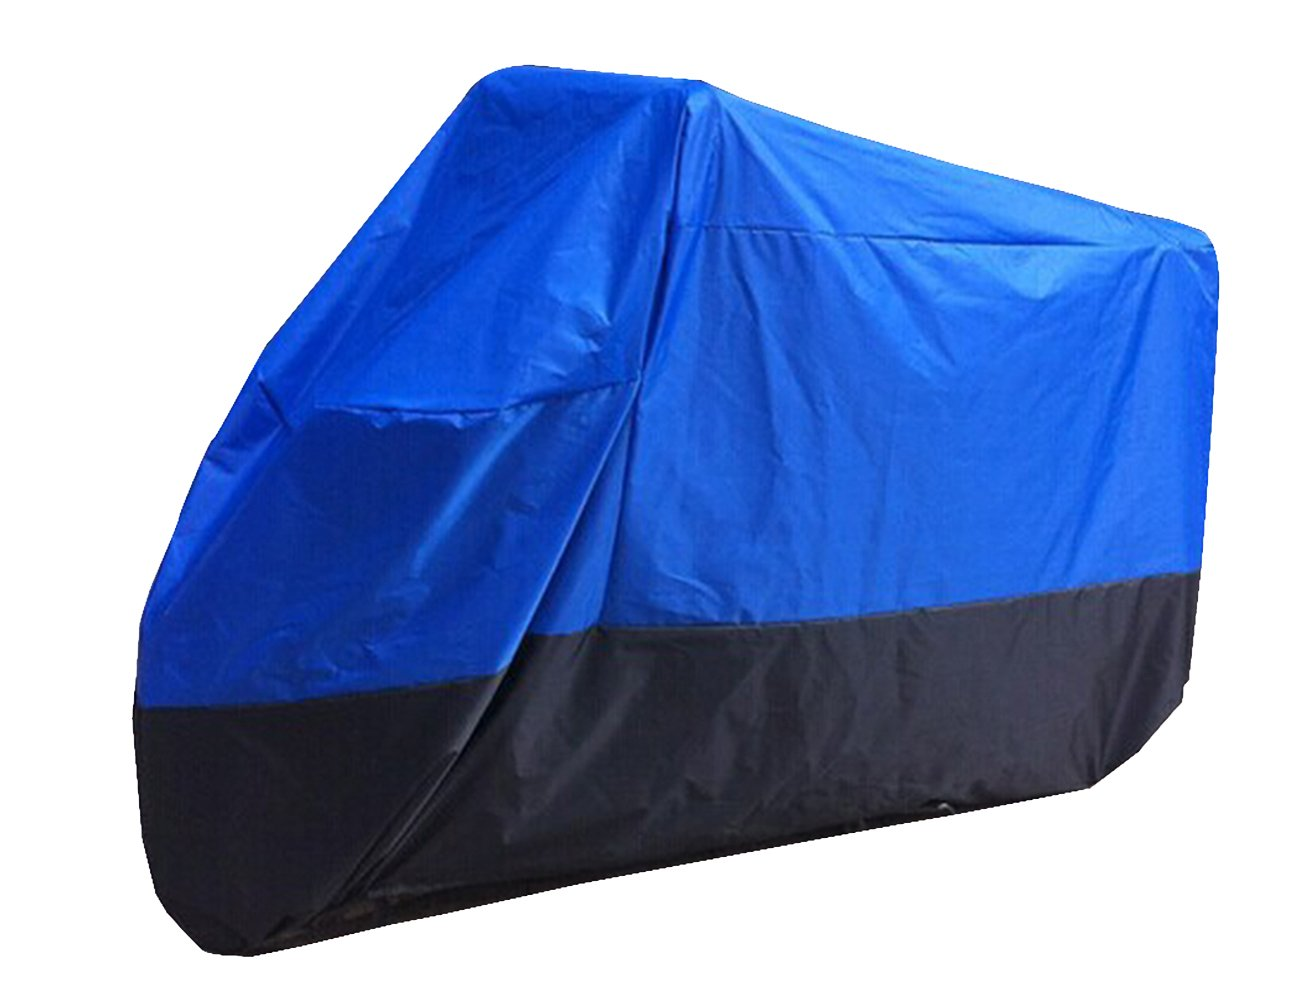 Faylapa Motorcycle Cover, All Season Outdoor Protection Cover, Waterproof, UV, Dustproof, Large Fits Most Sportbikes and Cruiser motorcycles (XL,Blue&Black)